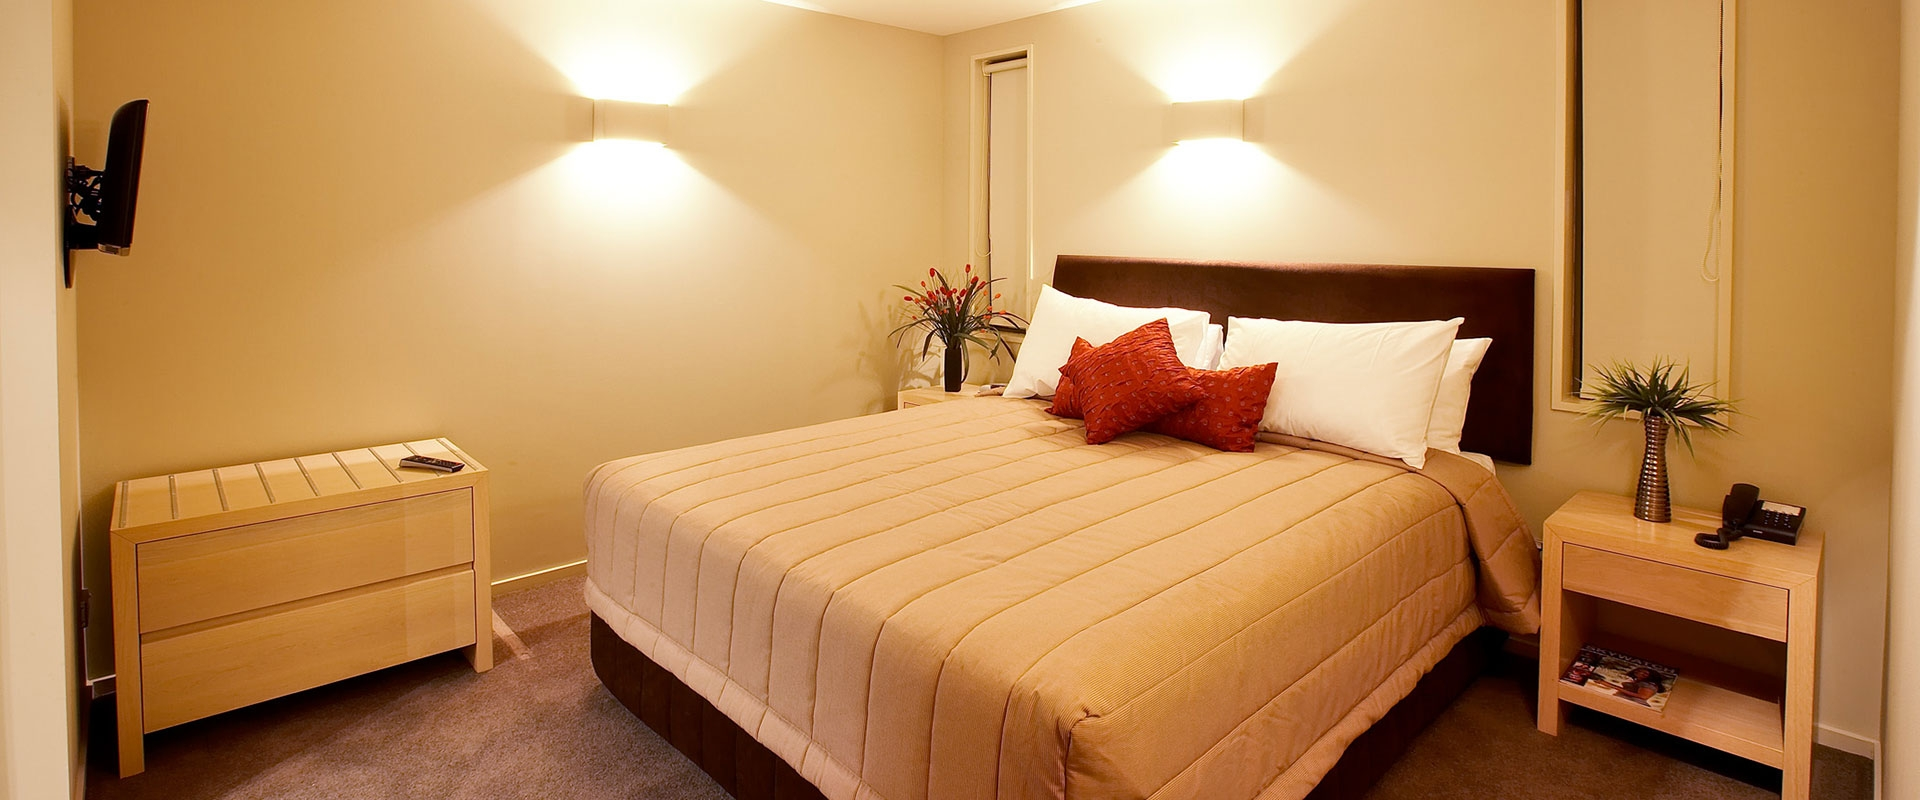 high quality comfortable beds in every room